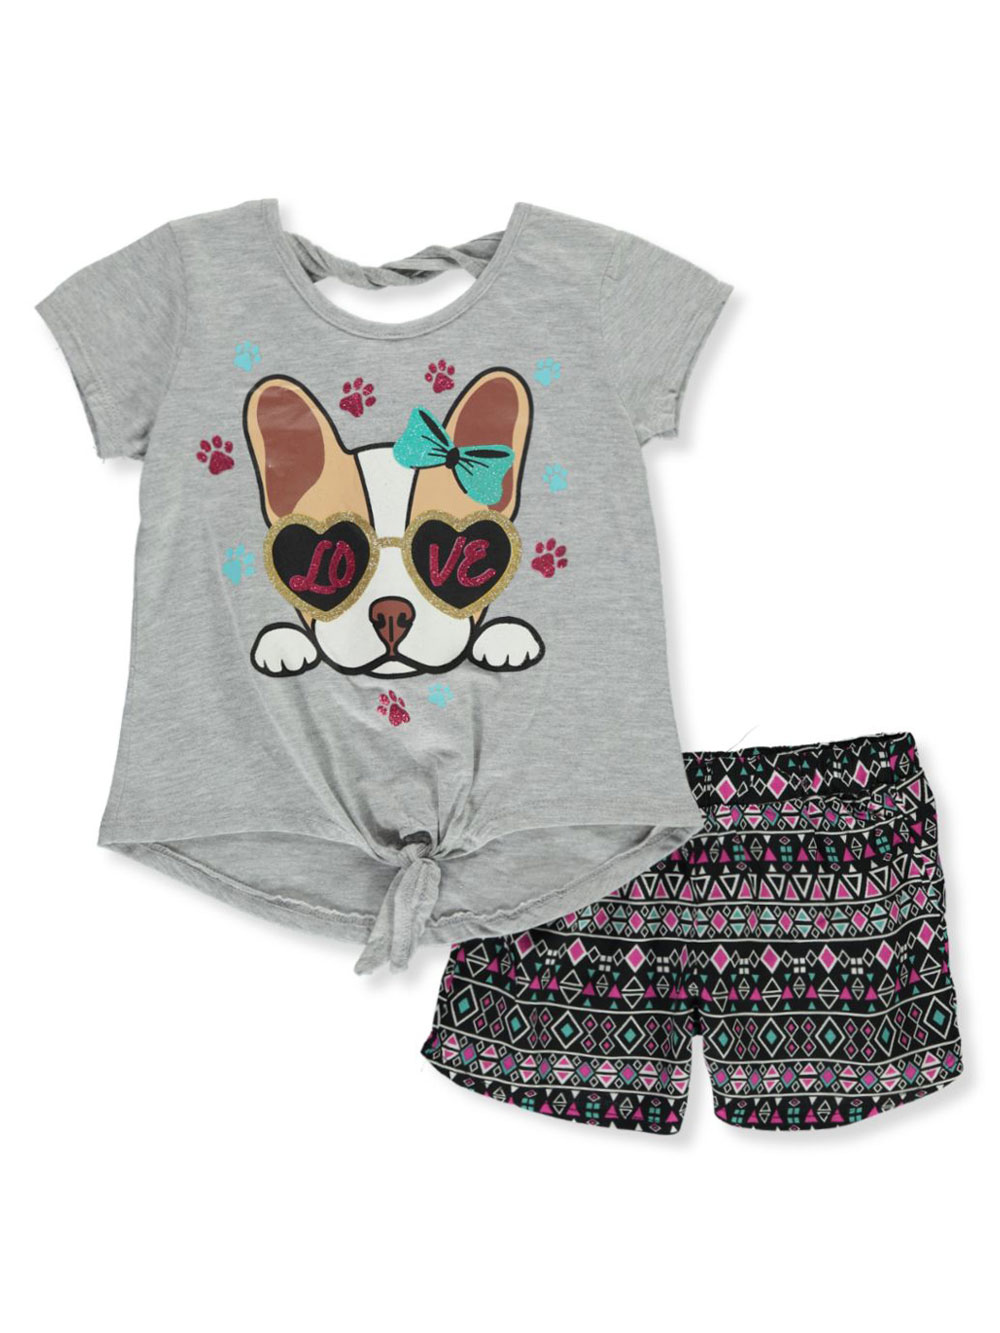 Girls Gray Short Sets